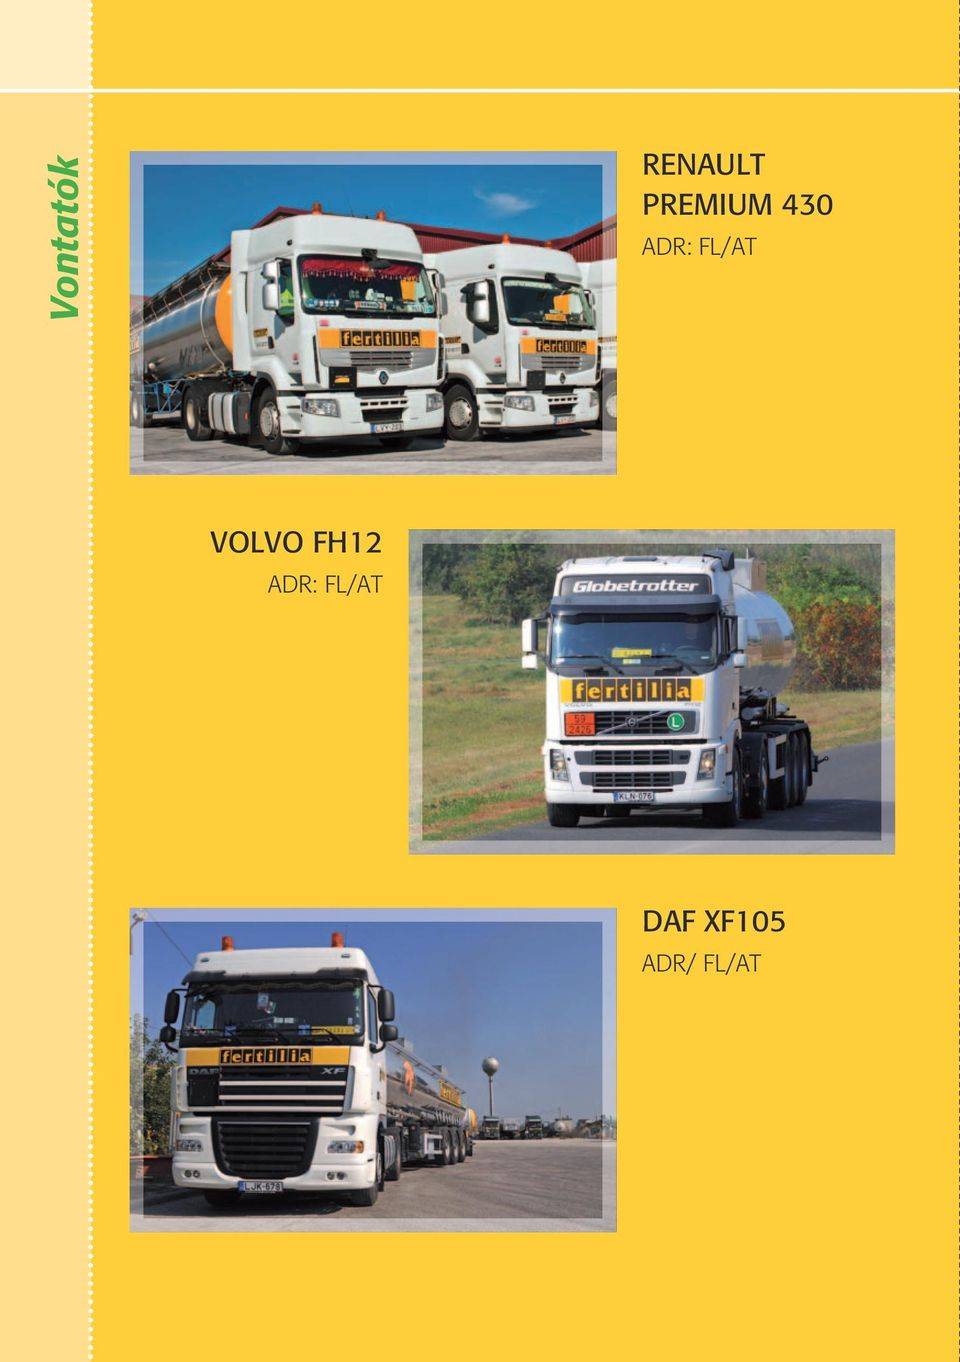 FL/AT VOLVO FH12